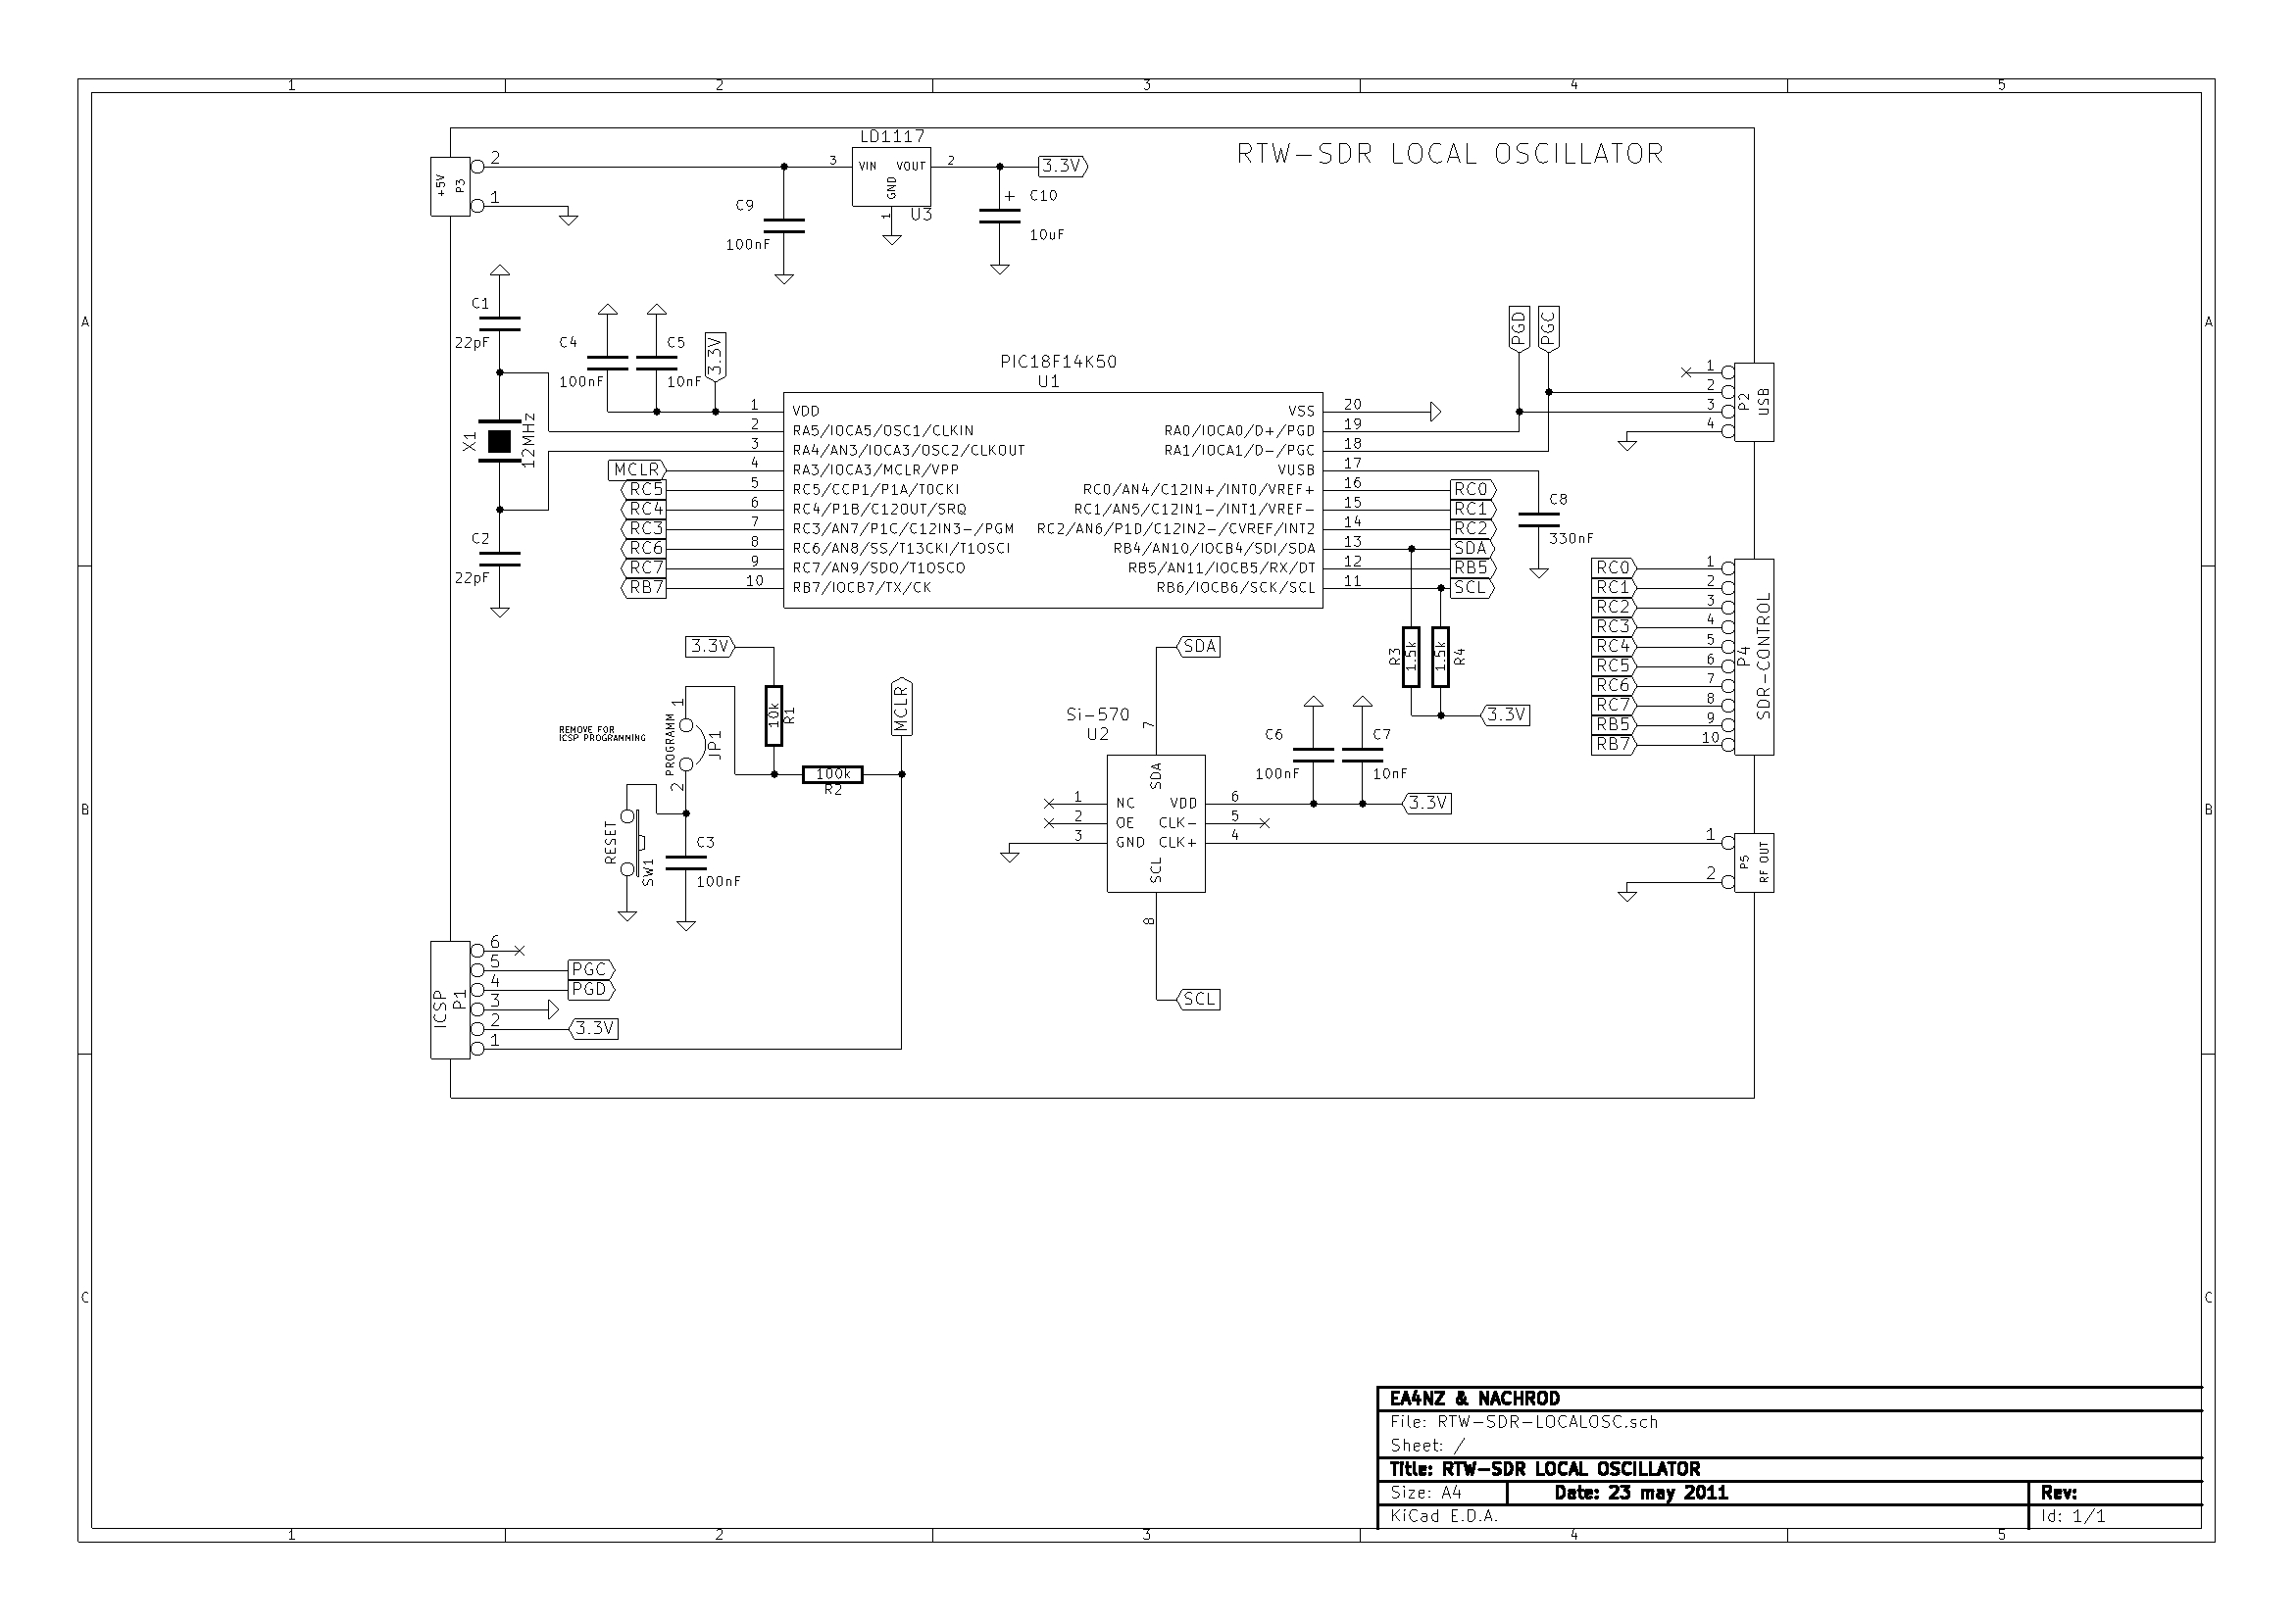 Sdr Hf Receiver Design Jpeg This Is One Application Circuit Of L585 If You Need More Circuits